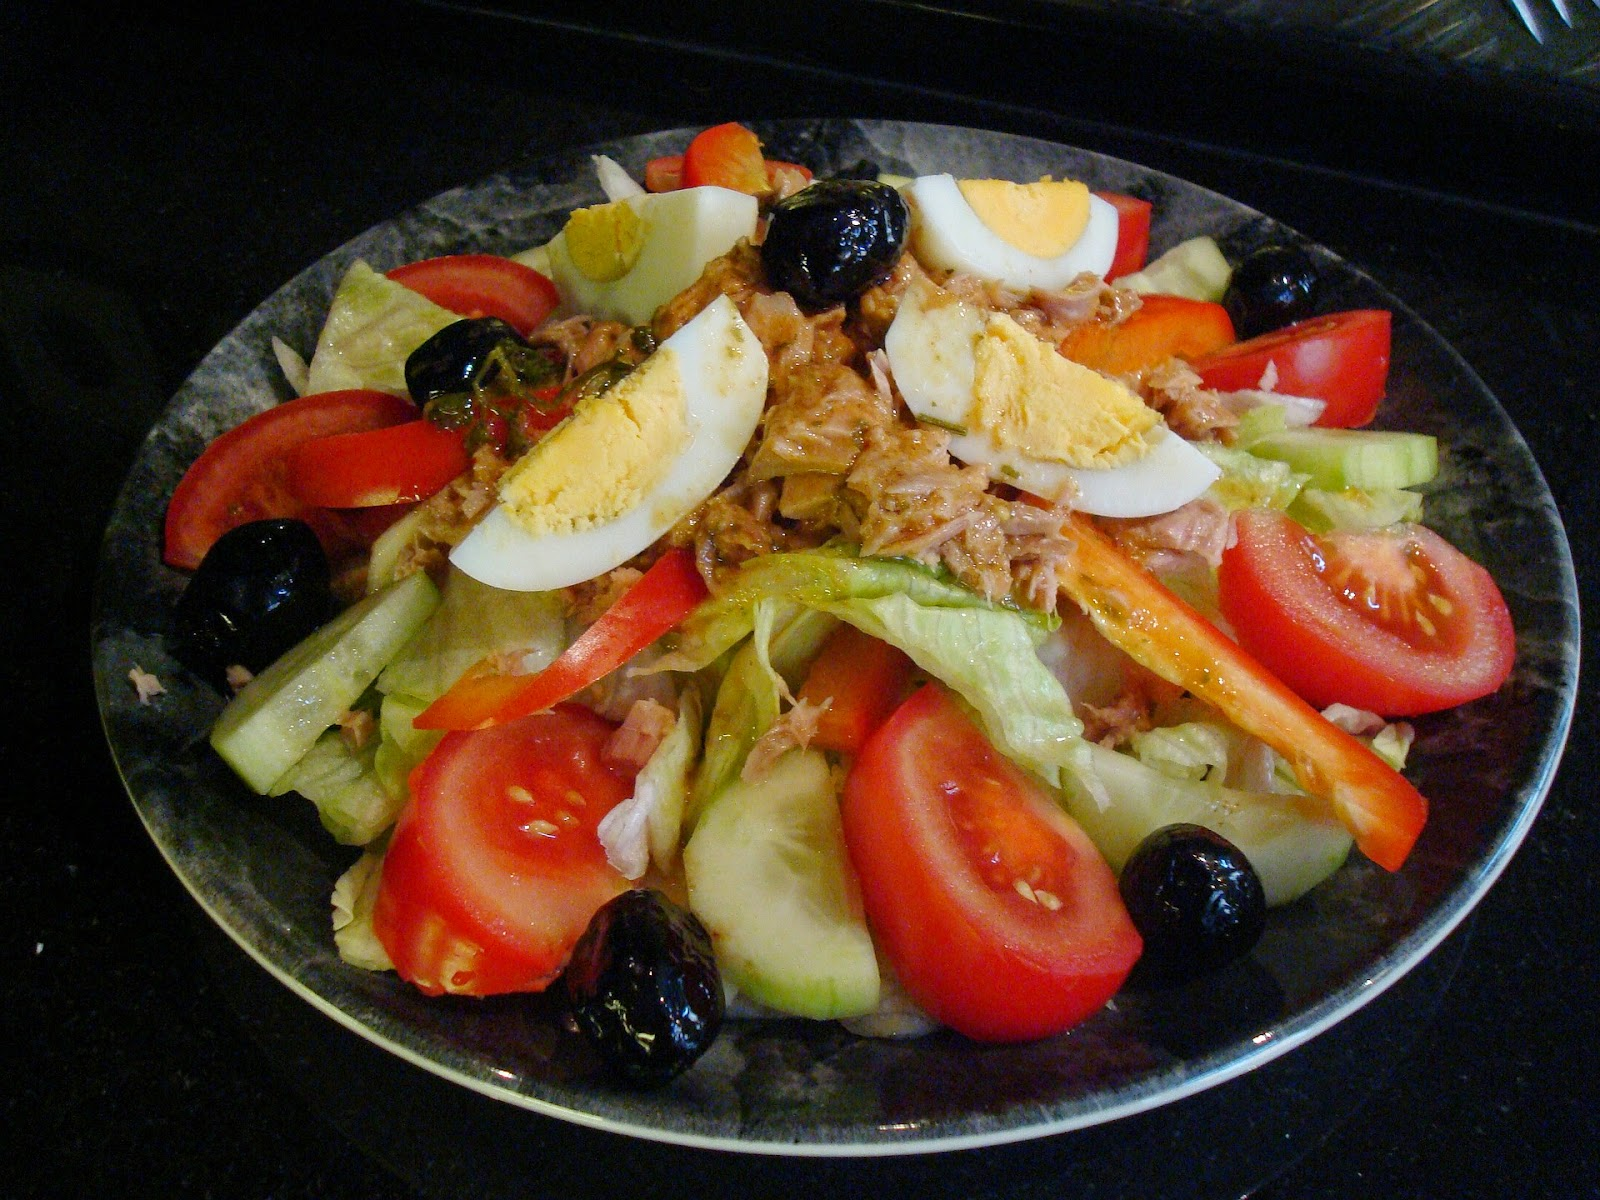 Tuna Salad with Tomatoes, Olives, Hard-Boiled Eggs